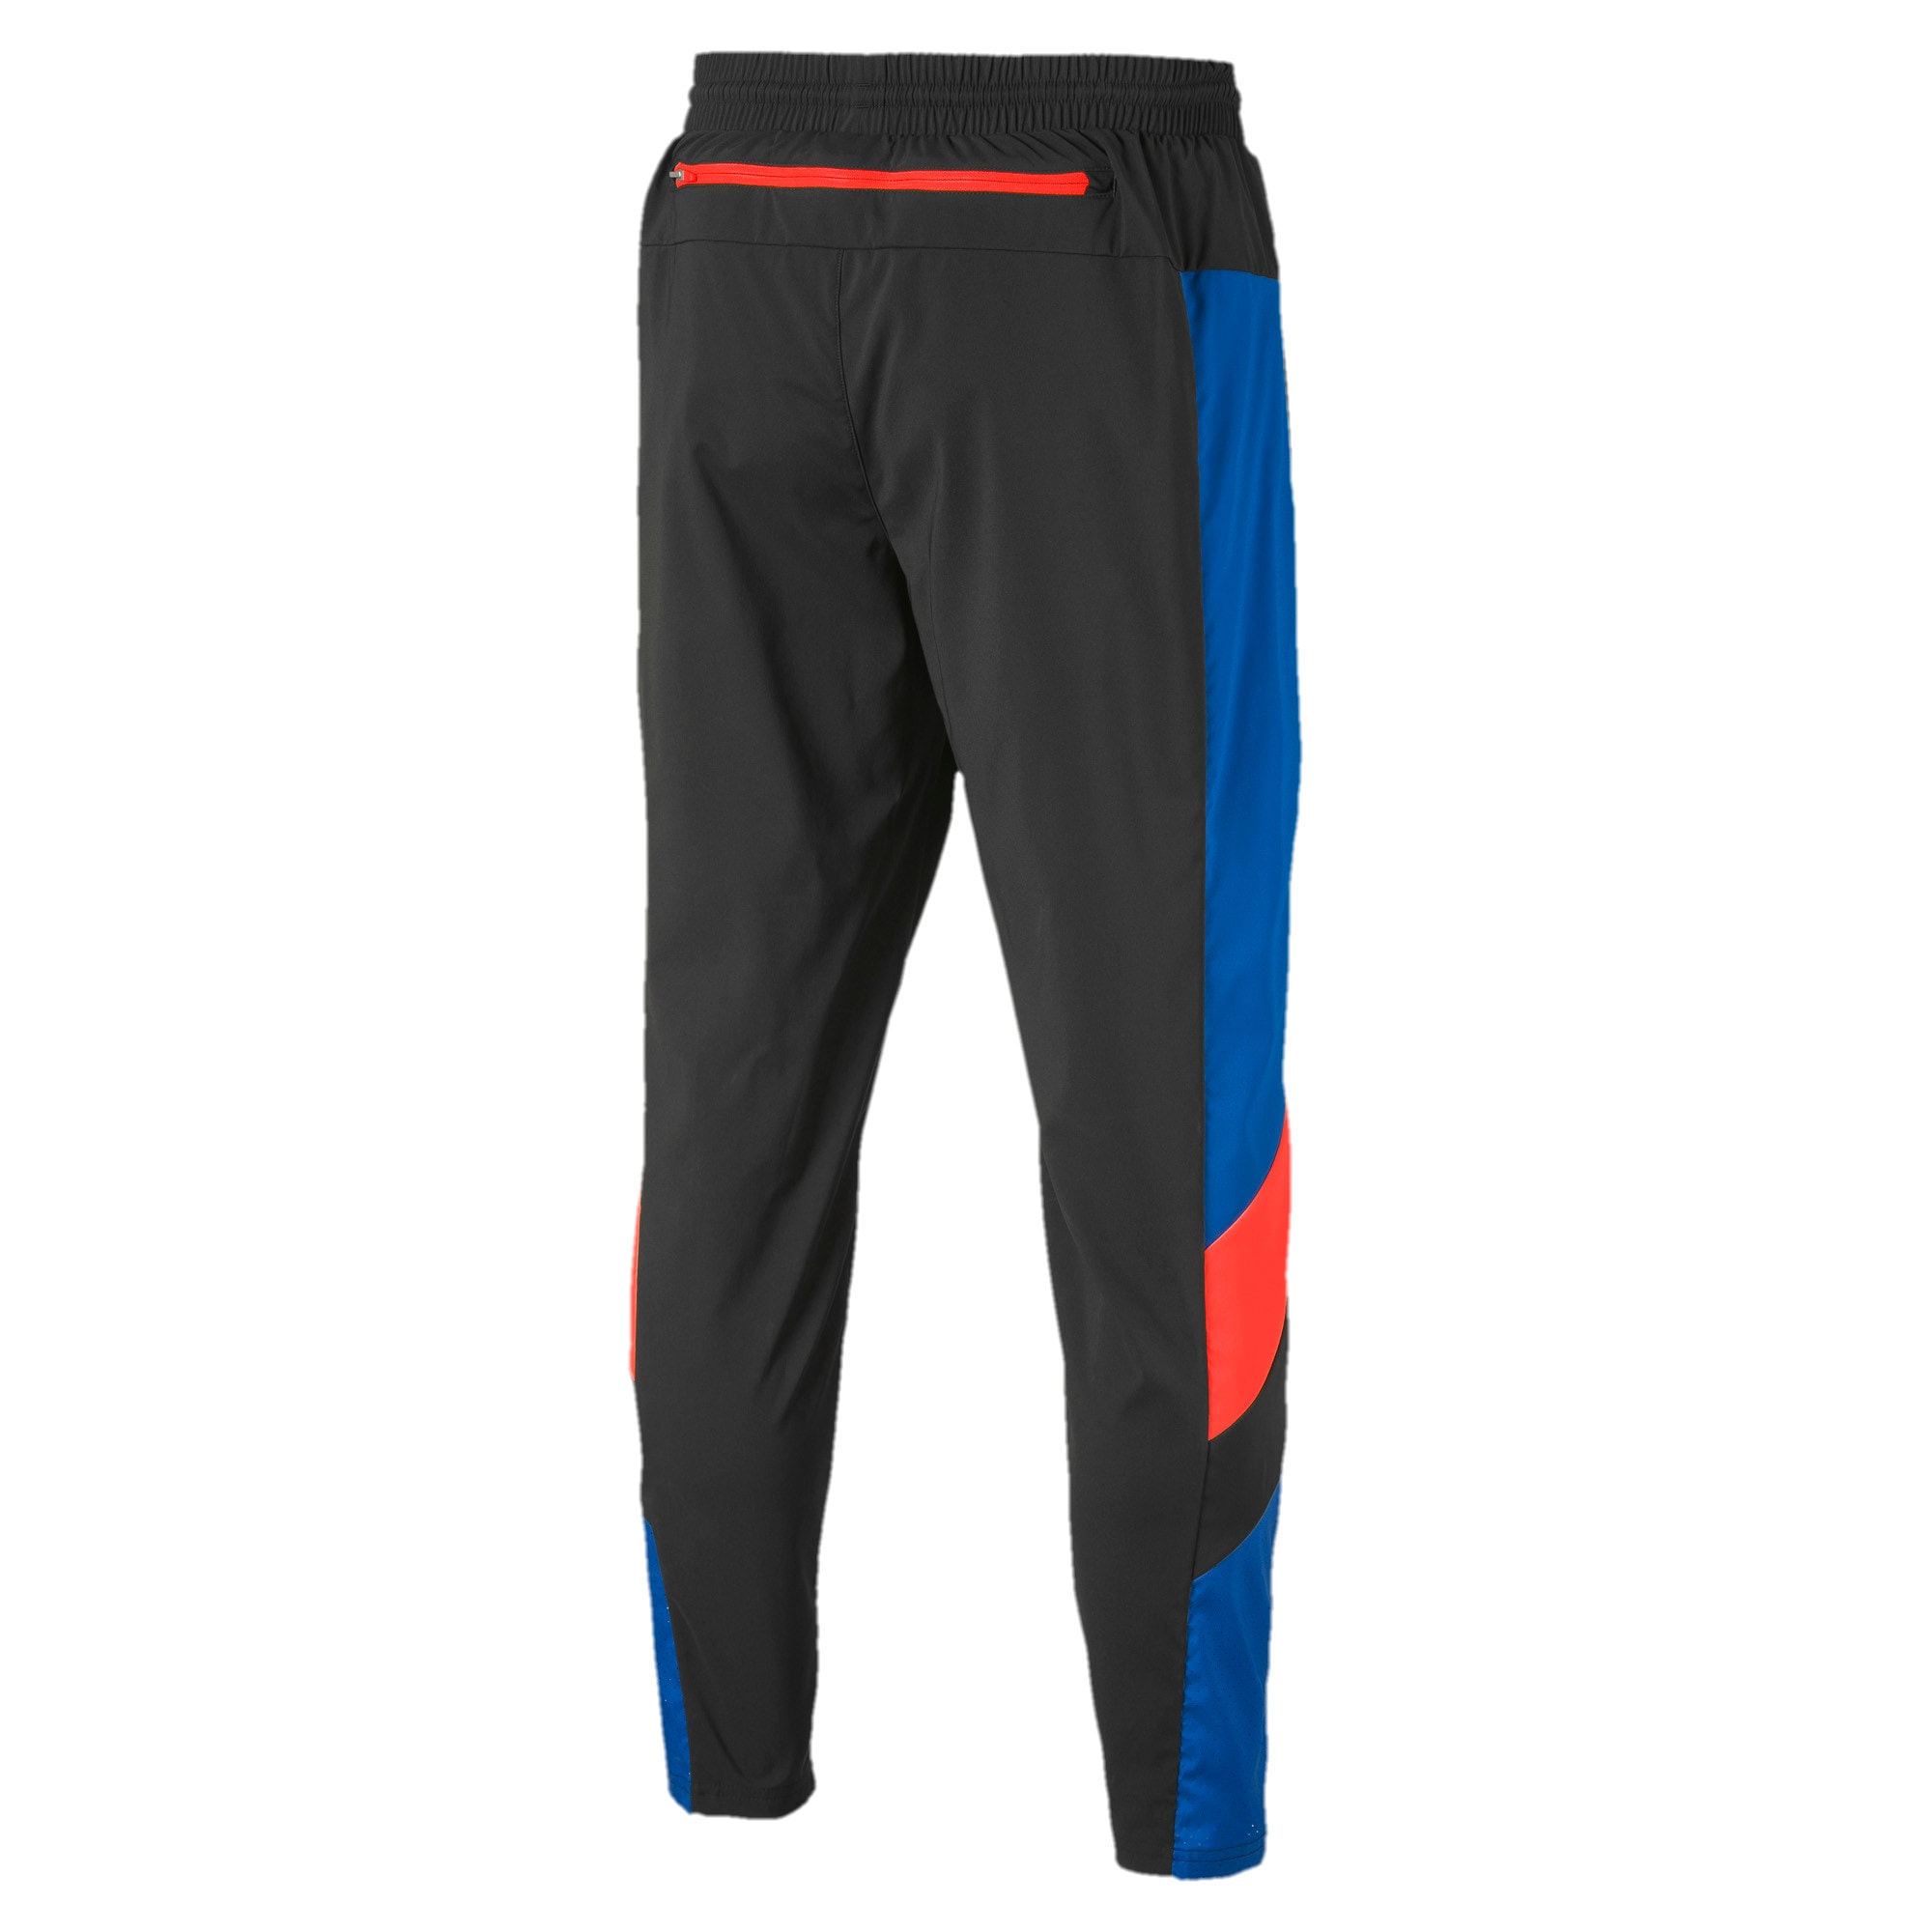 Thumbnail 5 of Reactive Packable Men's Training Pants, Black-Galaxy-Nrgy Red, medium